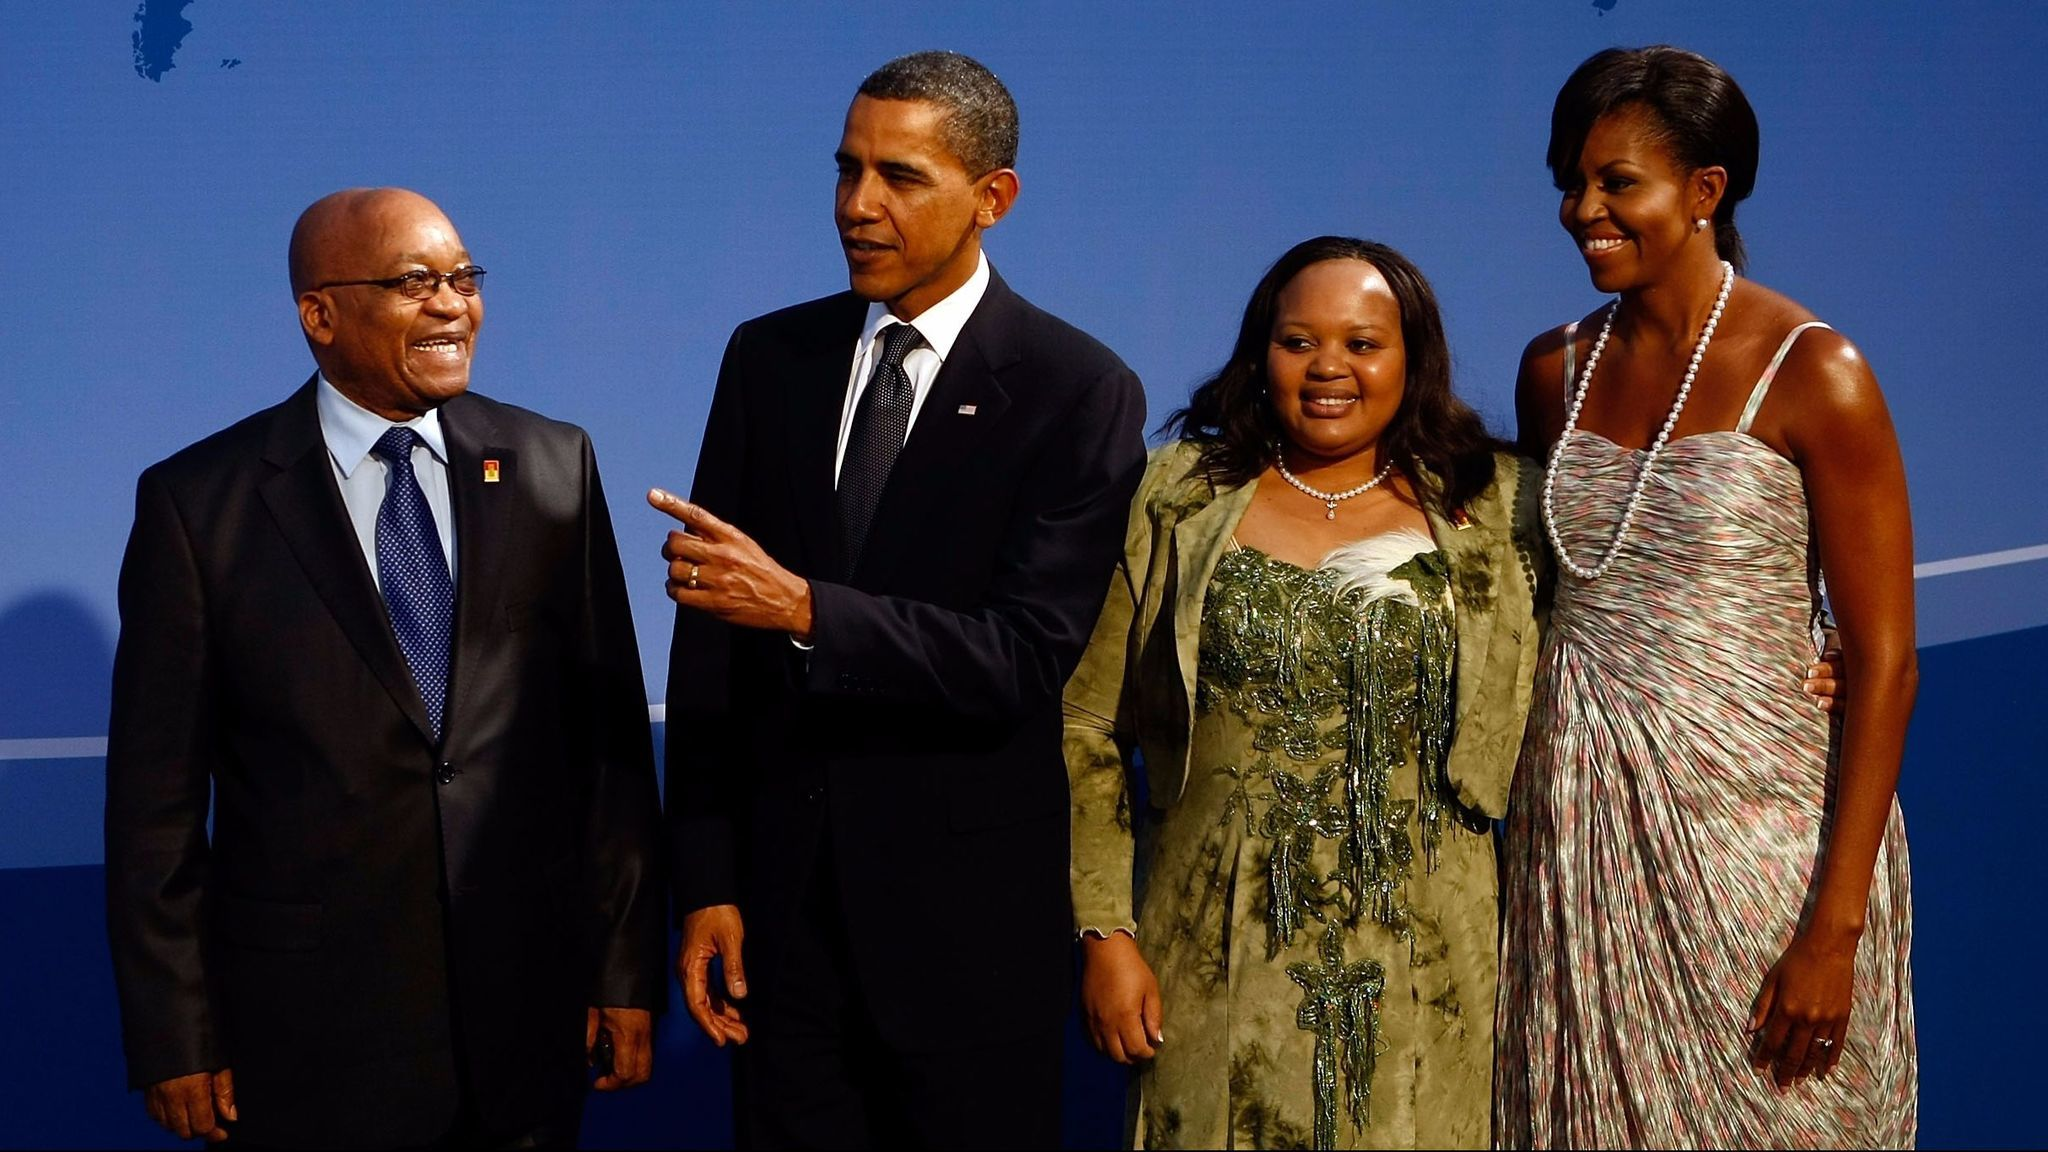 President Obama and former First Lady Michelle Obama, with South African President Jacob Zuma and Nompumelelo Ntuli-Zuma, one of his wives, at the G-20 summit in Pittsburgh in 2009. After he fell ill in 2014, Zuma accused his wife of taking part in a plot to poison him.